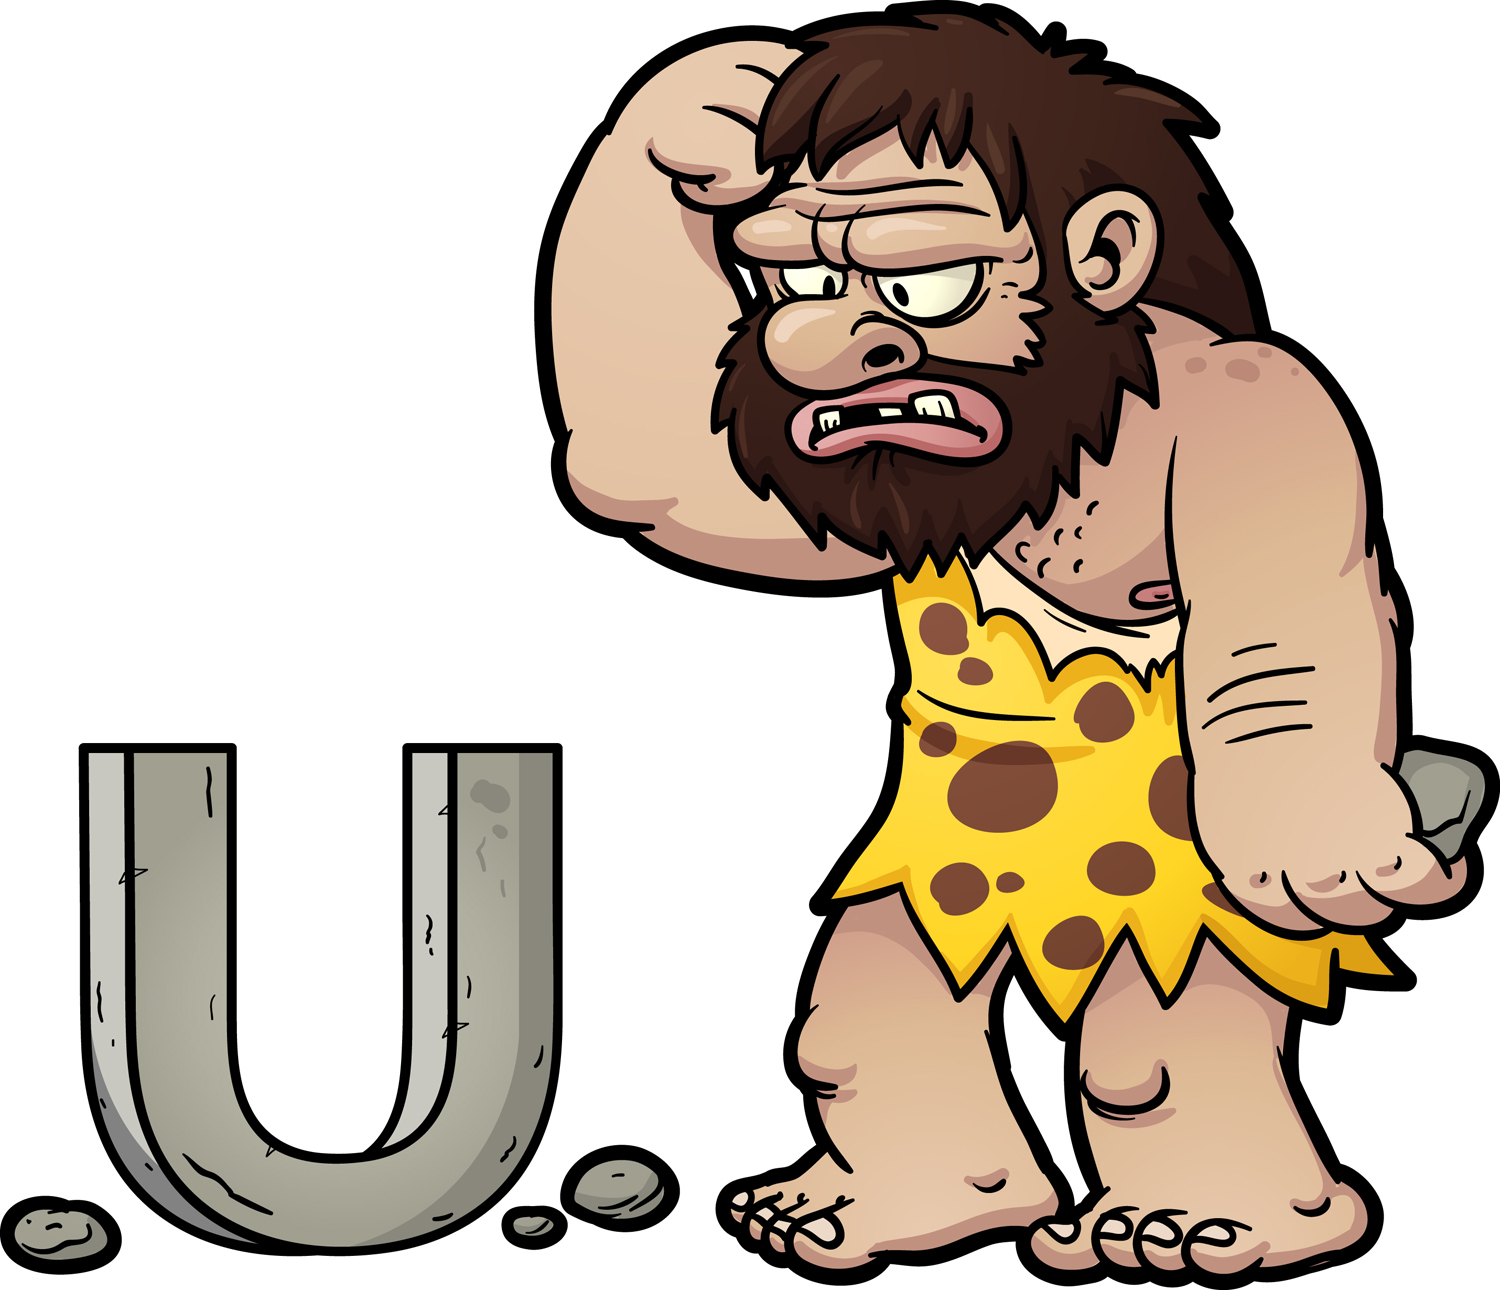 Caveman clipart neanderthal Says Confused the the